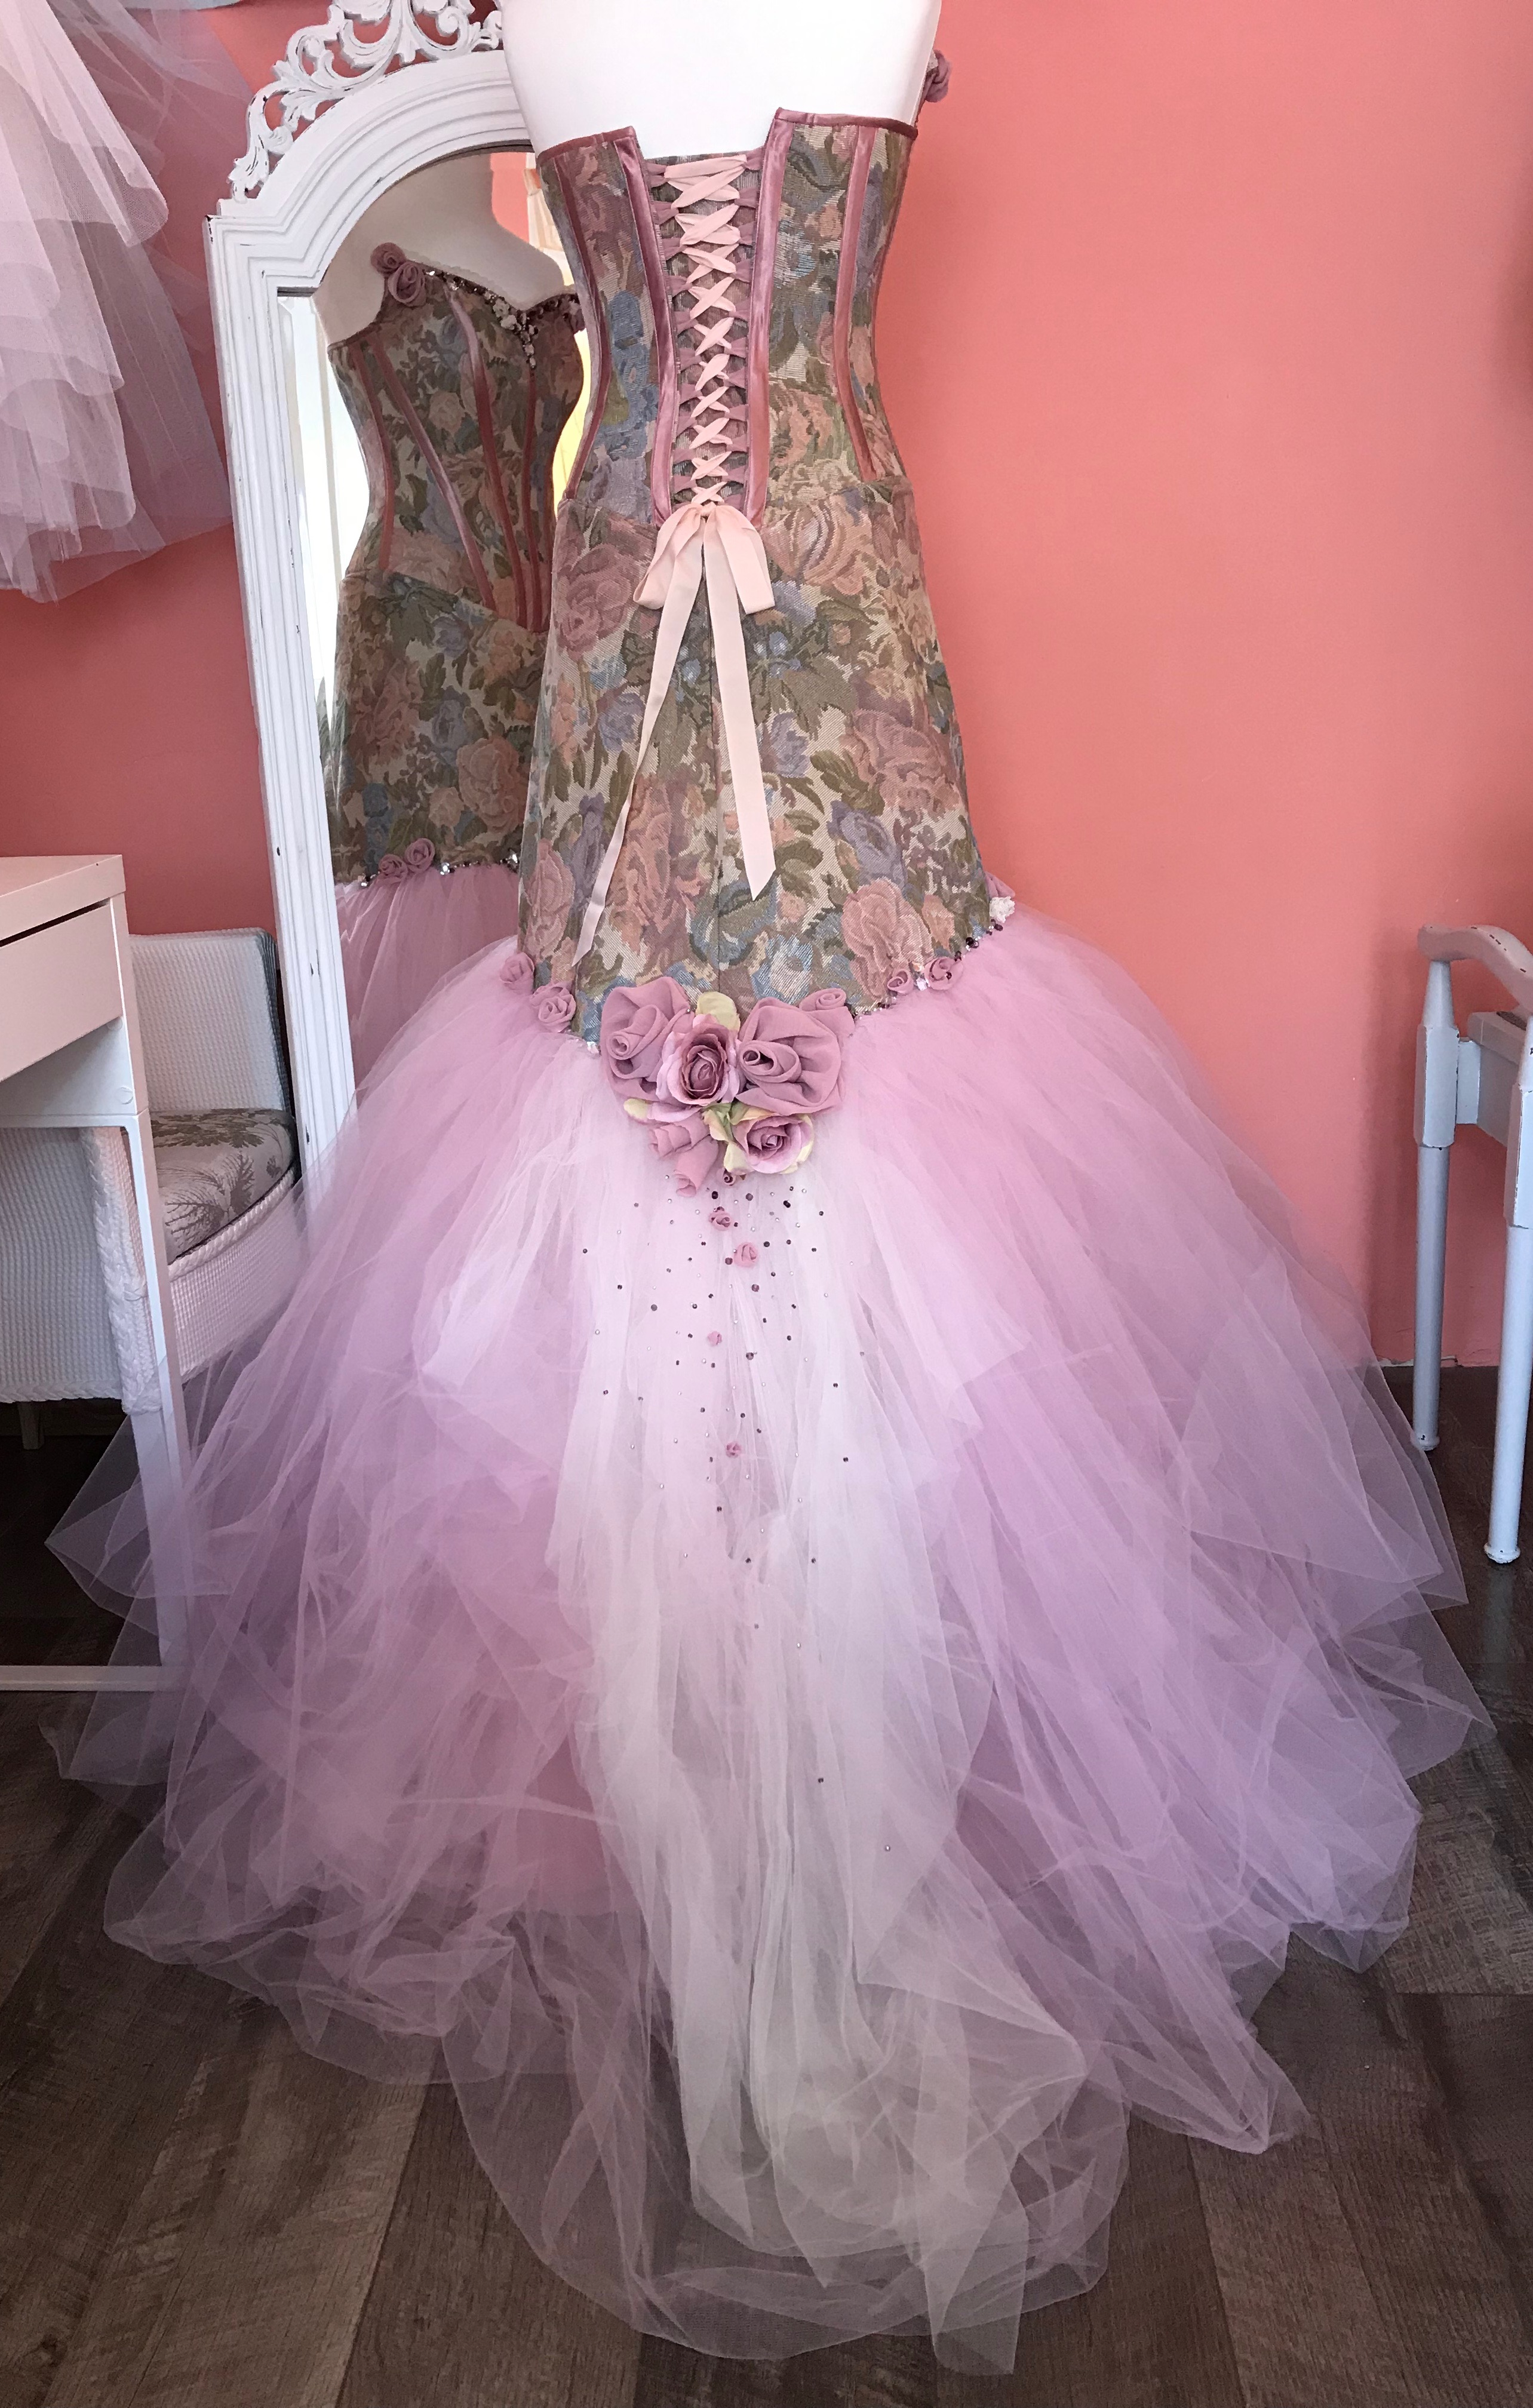 Rose wedding gown back